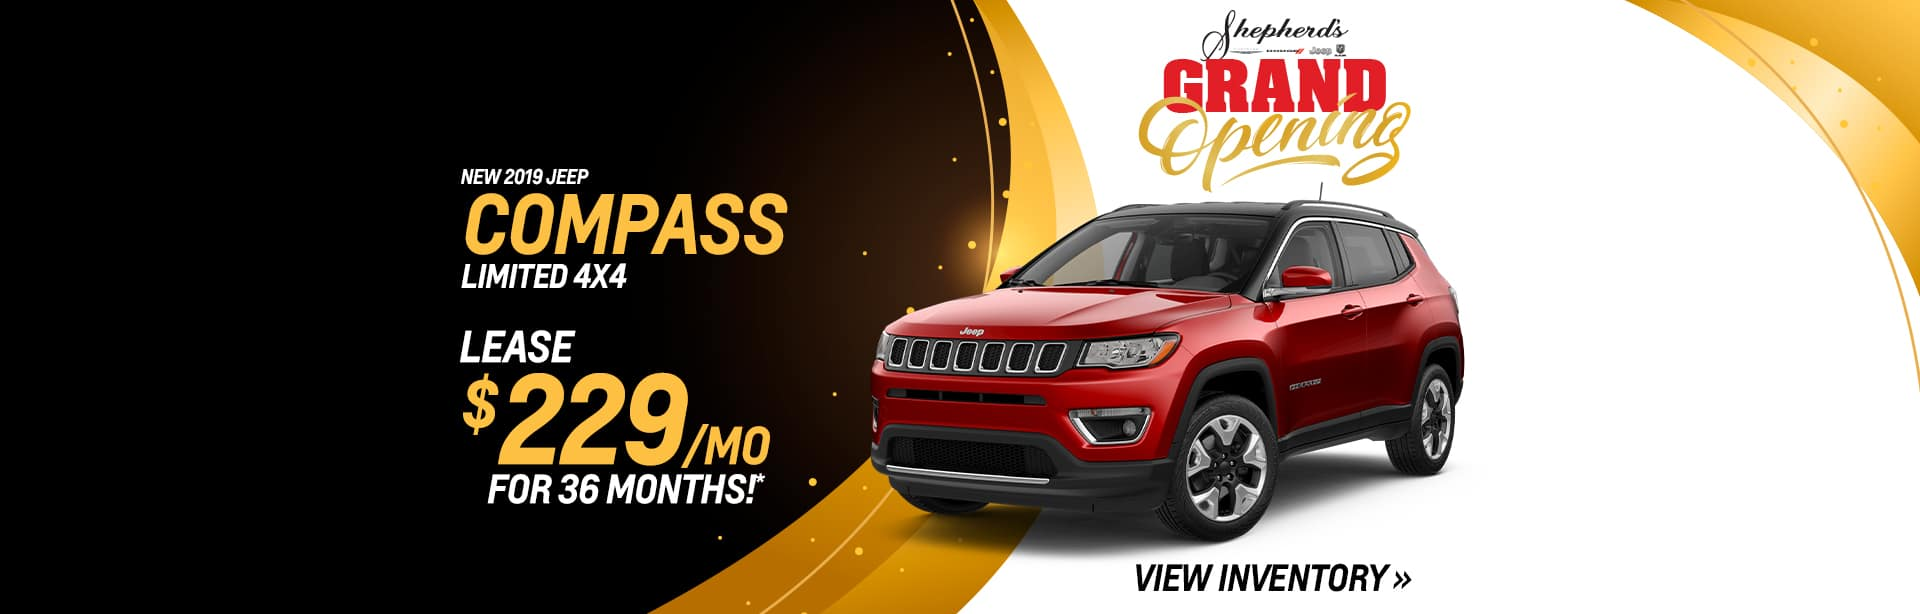 Lease a New Jeep Compass for $229 a month in Auburn, Indiana